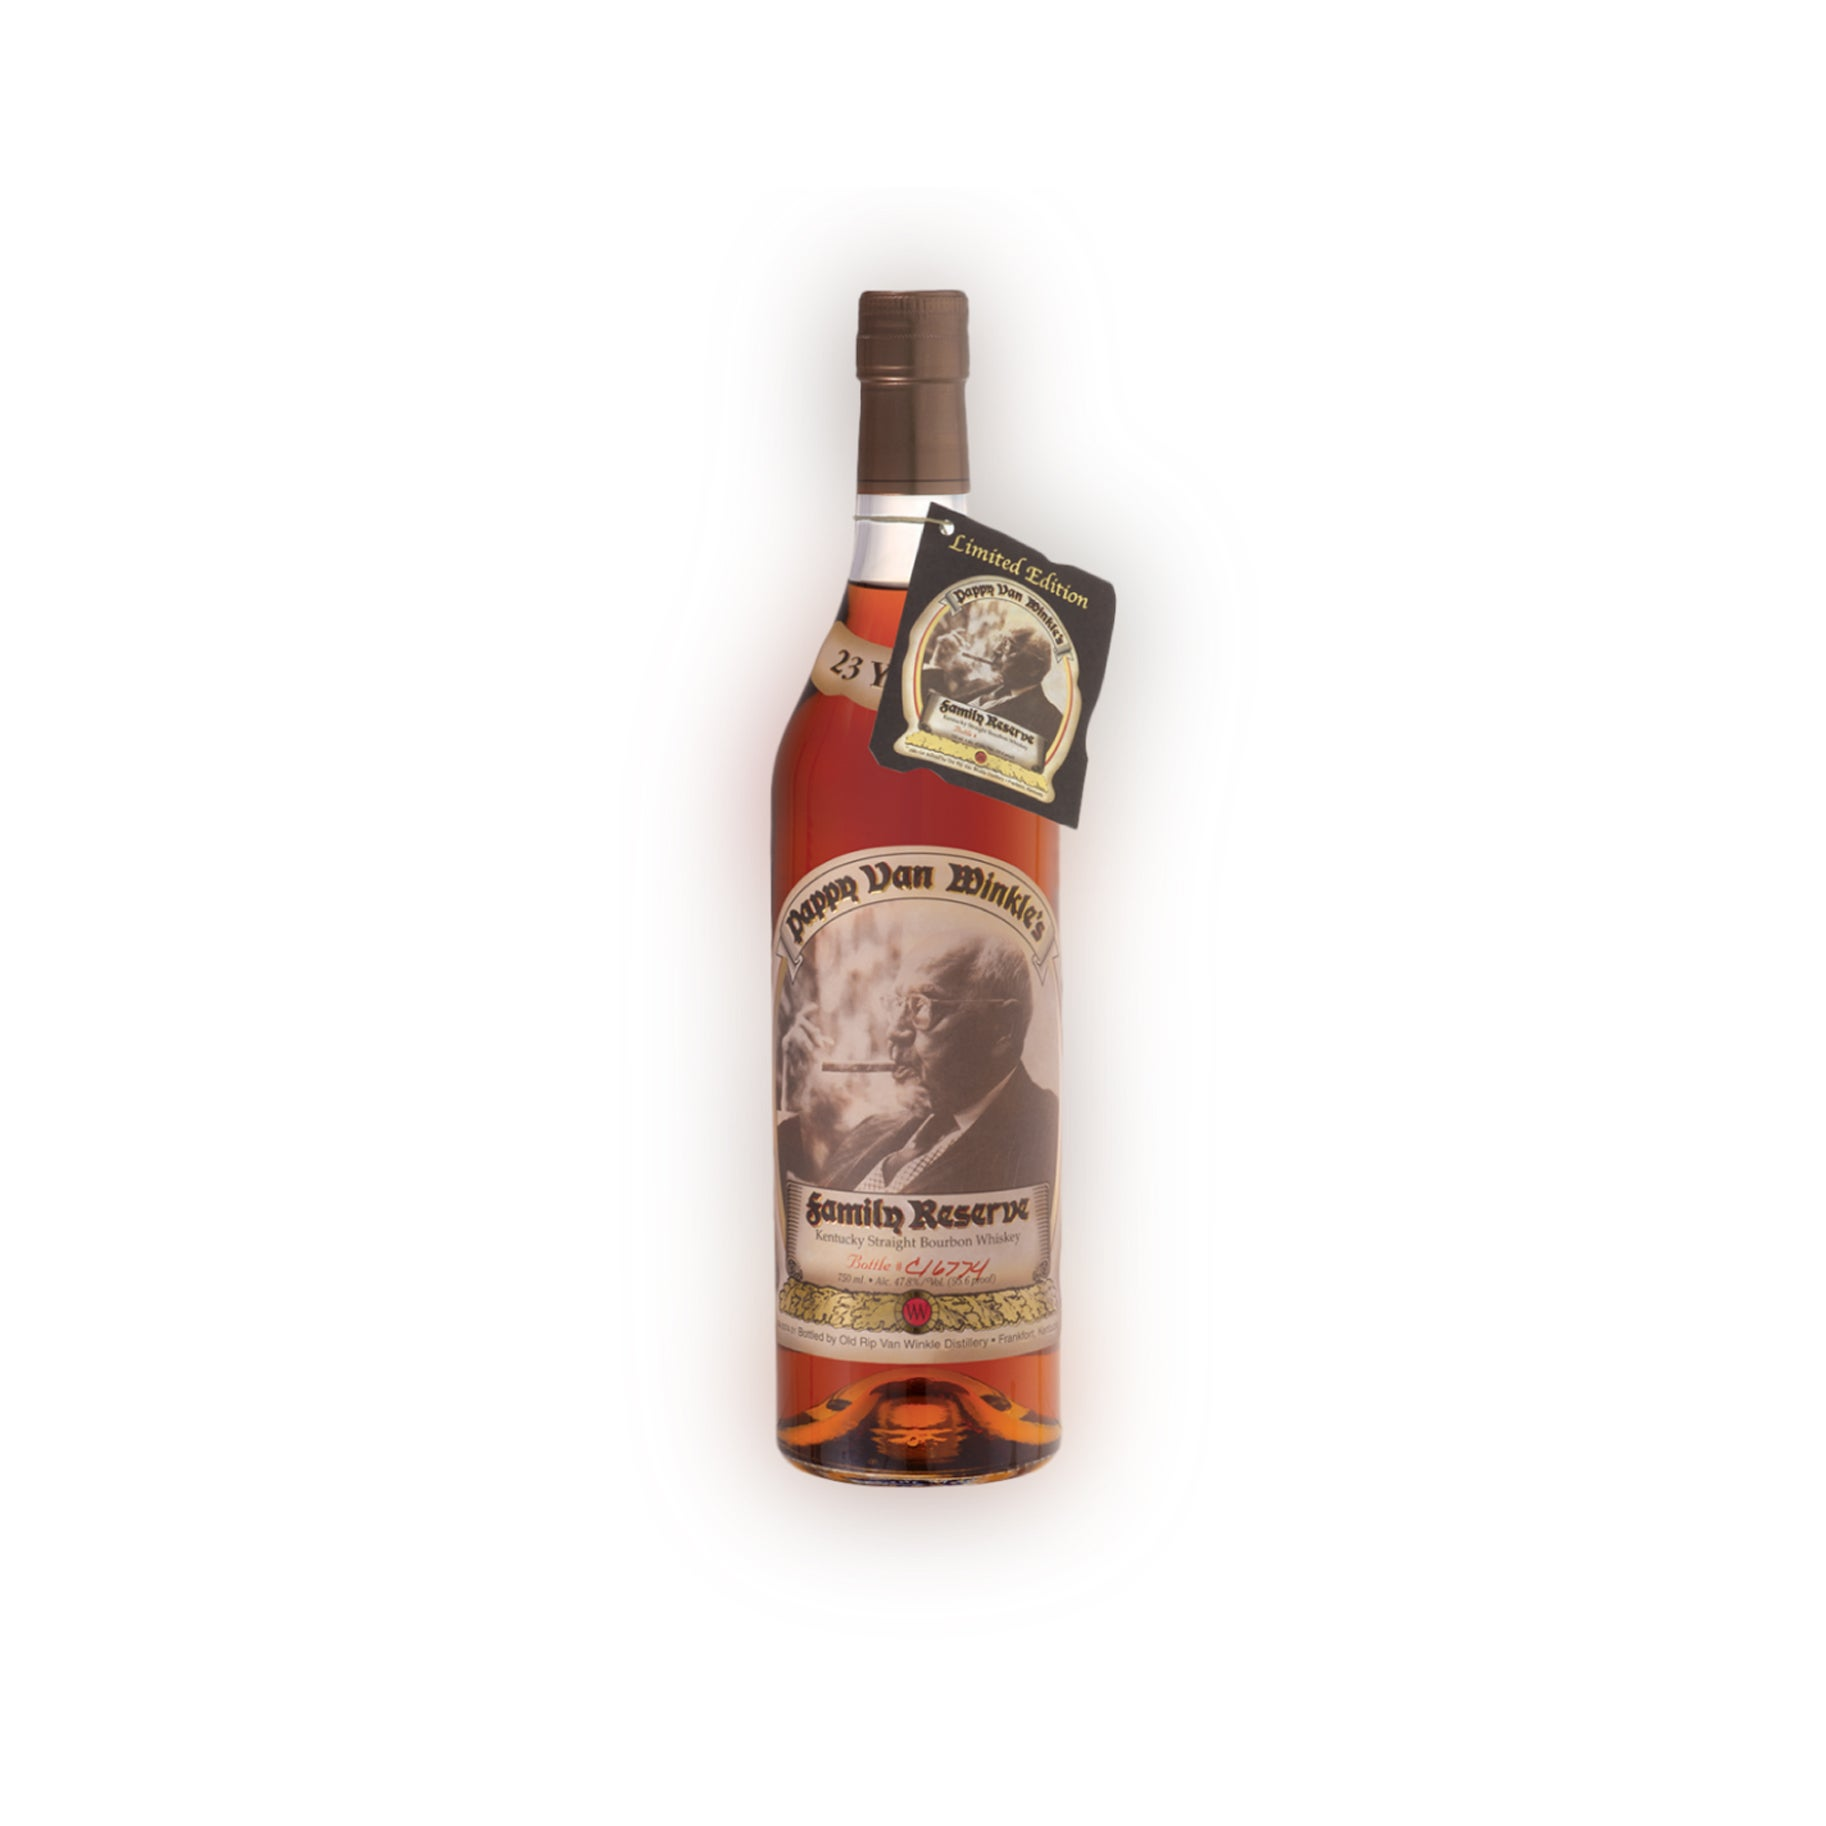 The Best Bourbons Option: Pappy Van Winkle 23 Year Family Reserve